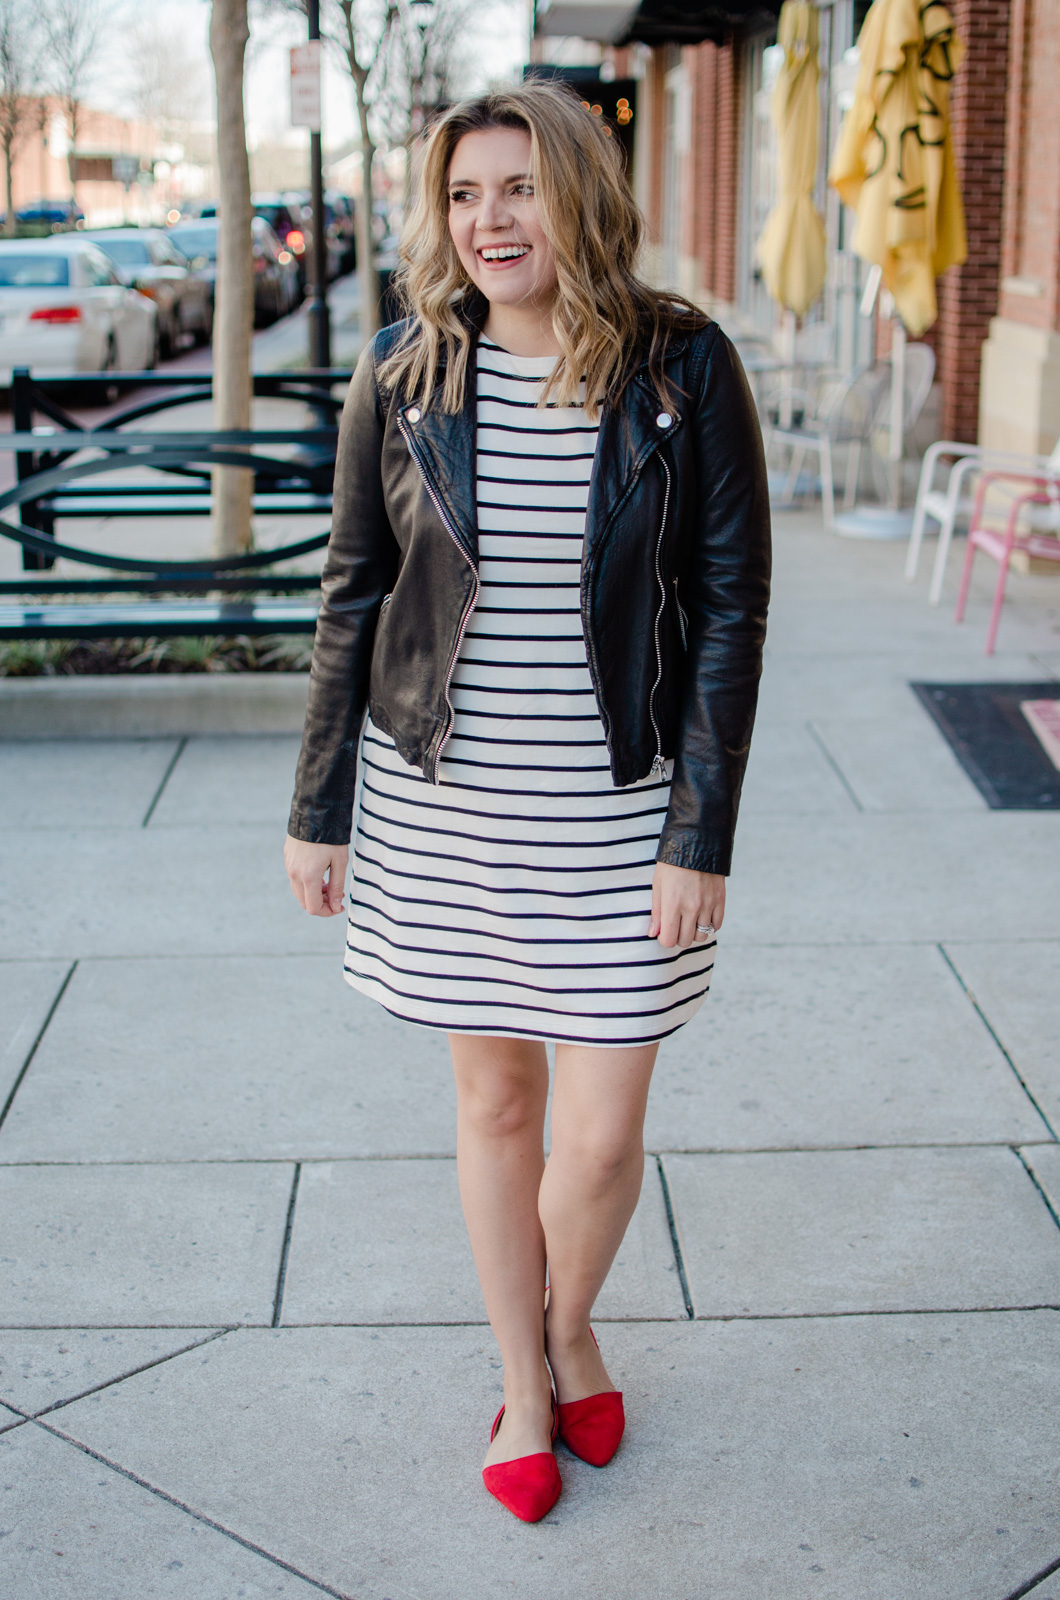 Affordable style blogger Lauren Dix shares six stripe dress outfits for going into spring! Come see all the ways to wear this striped dress under $30!